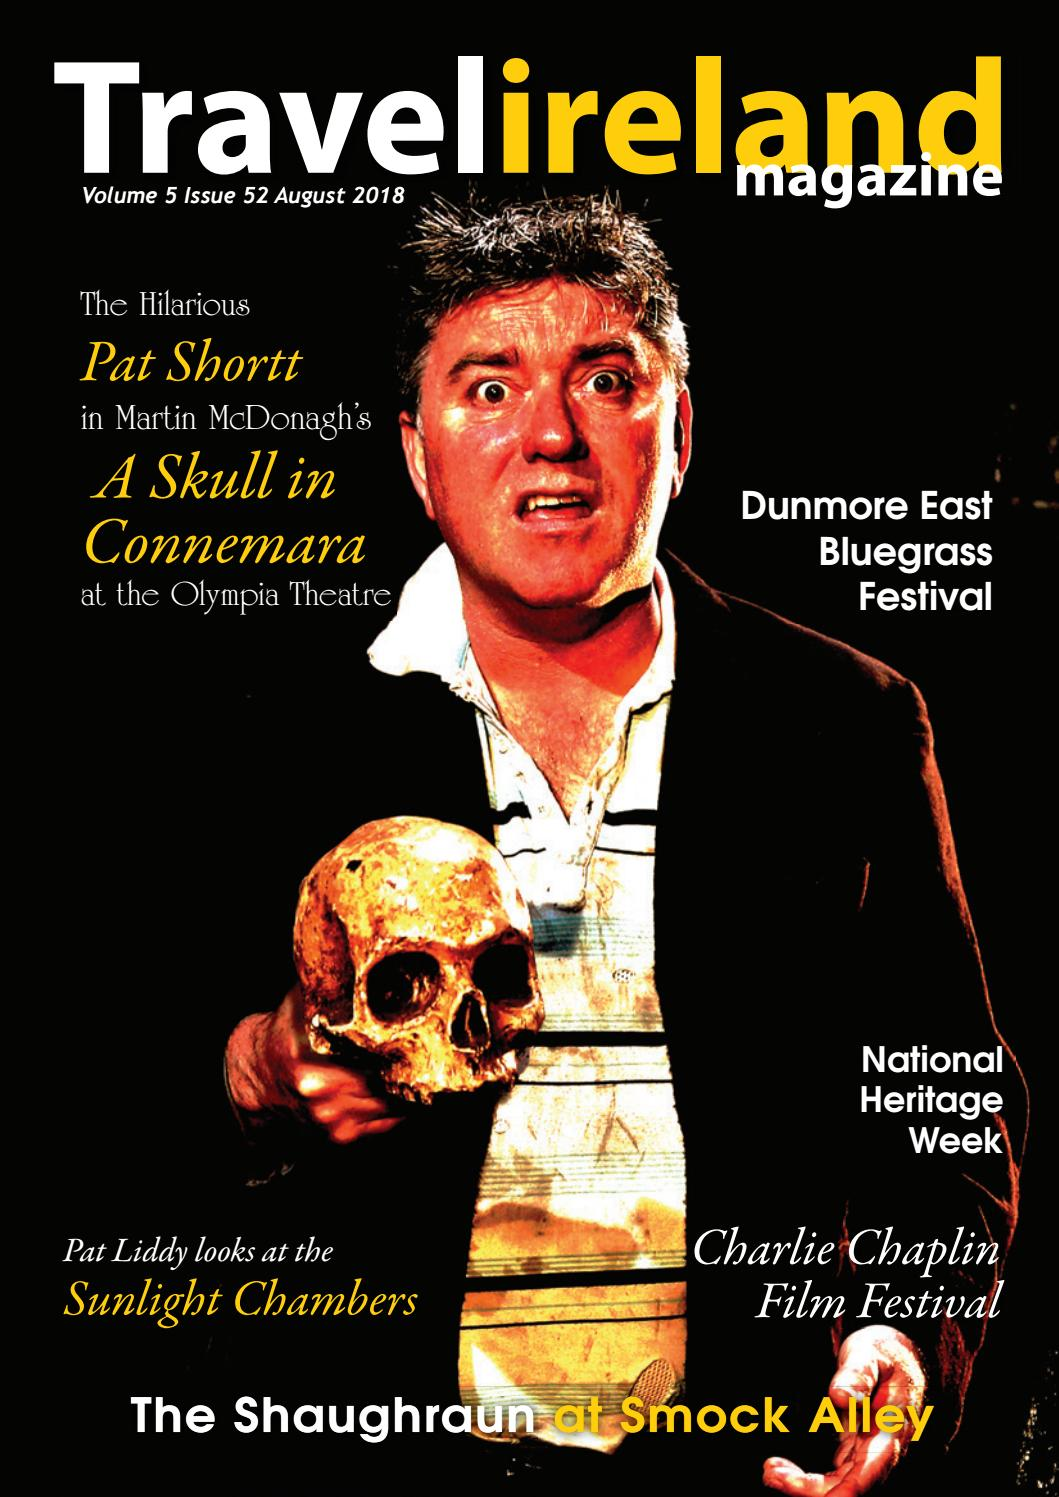 Travel Ireland Volume 5 Issue 52 by Travel Ireland Magazine - issuu